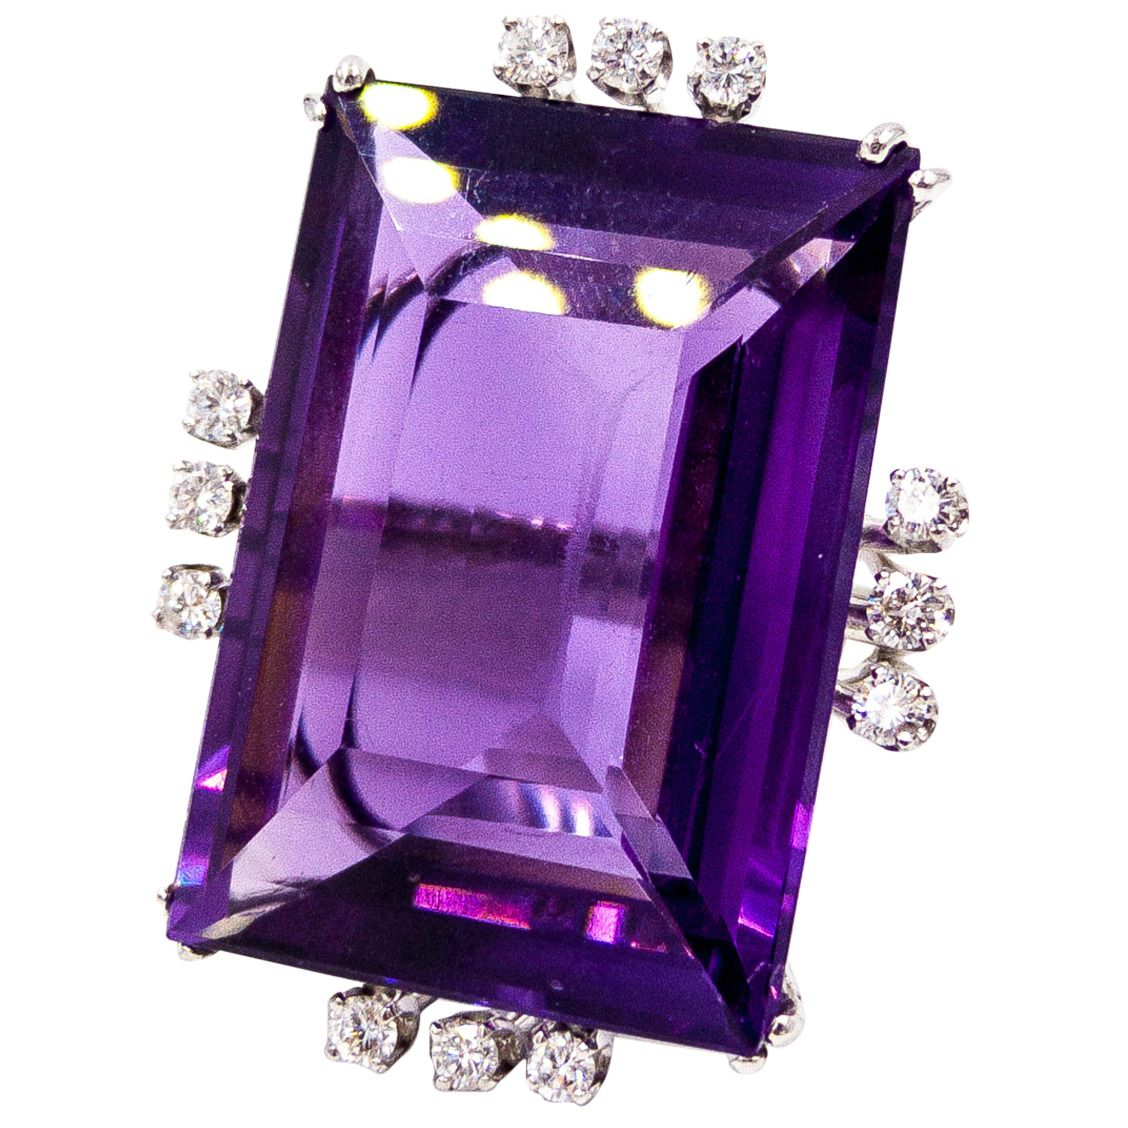 0efe0041021ab Spectacular 50 Carat Amethyst Diamond Gold Cocktail Ring in 2019 ...